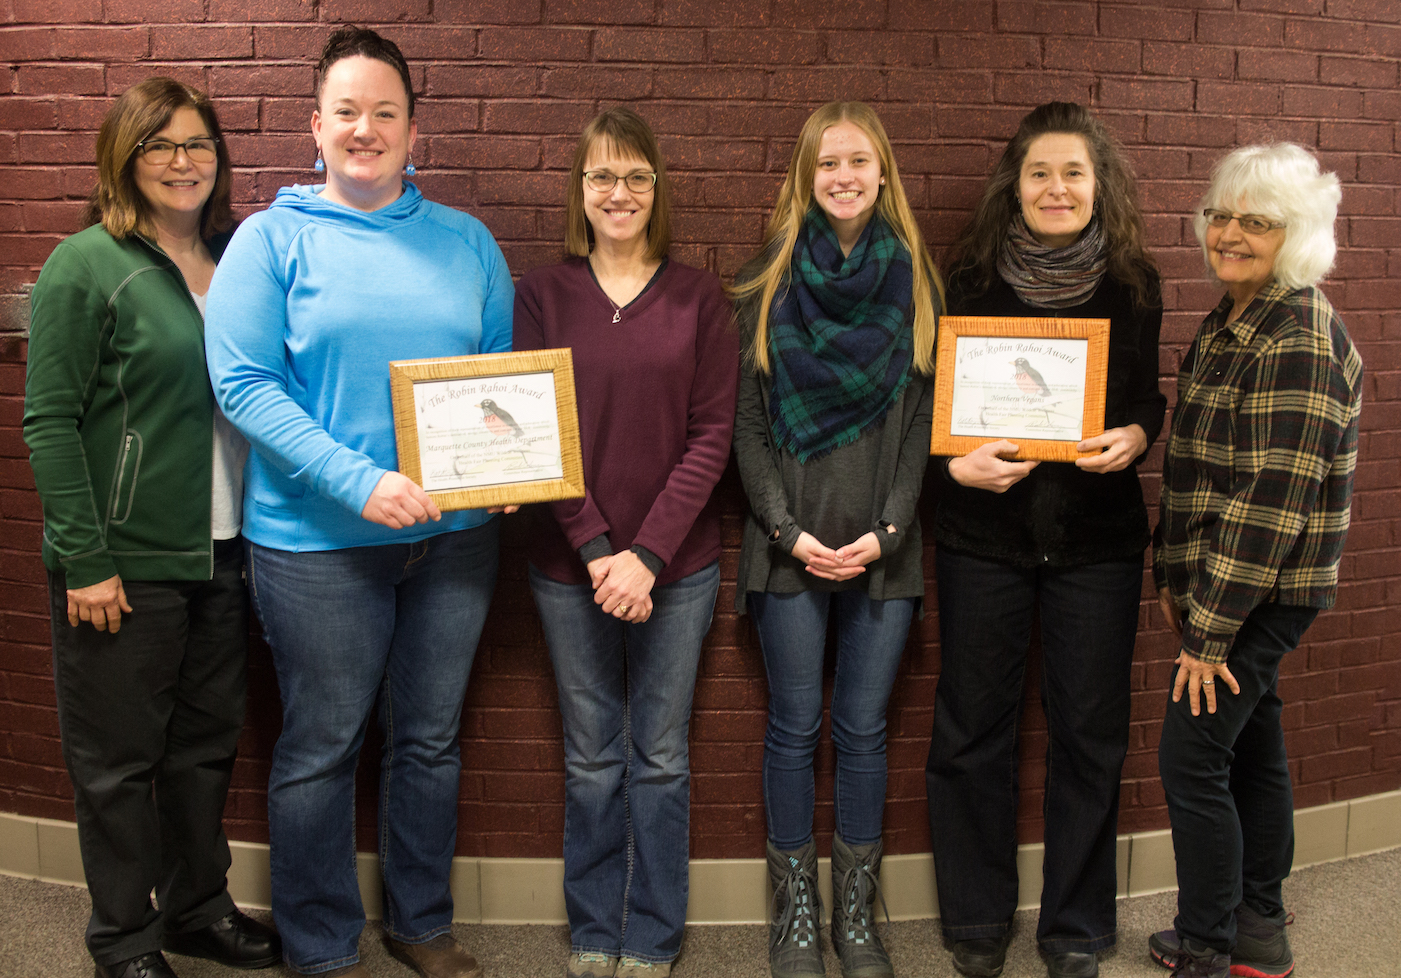 Pictured, left to right, are Sharon Carey, Director of NMU Dining Services; Sarah Derwin, health educator, MCHD; Laura Fredrickson, HIV/AIDS coordinator, MCHD; Kate Rozeveld, president of the NMU Health Promotion Society, the student group that sponsored the event; Natasha Lantz, Northern Vegans; and Barb Coleman, health fair coordinator.